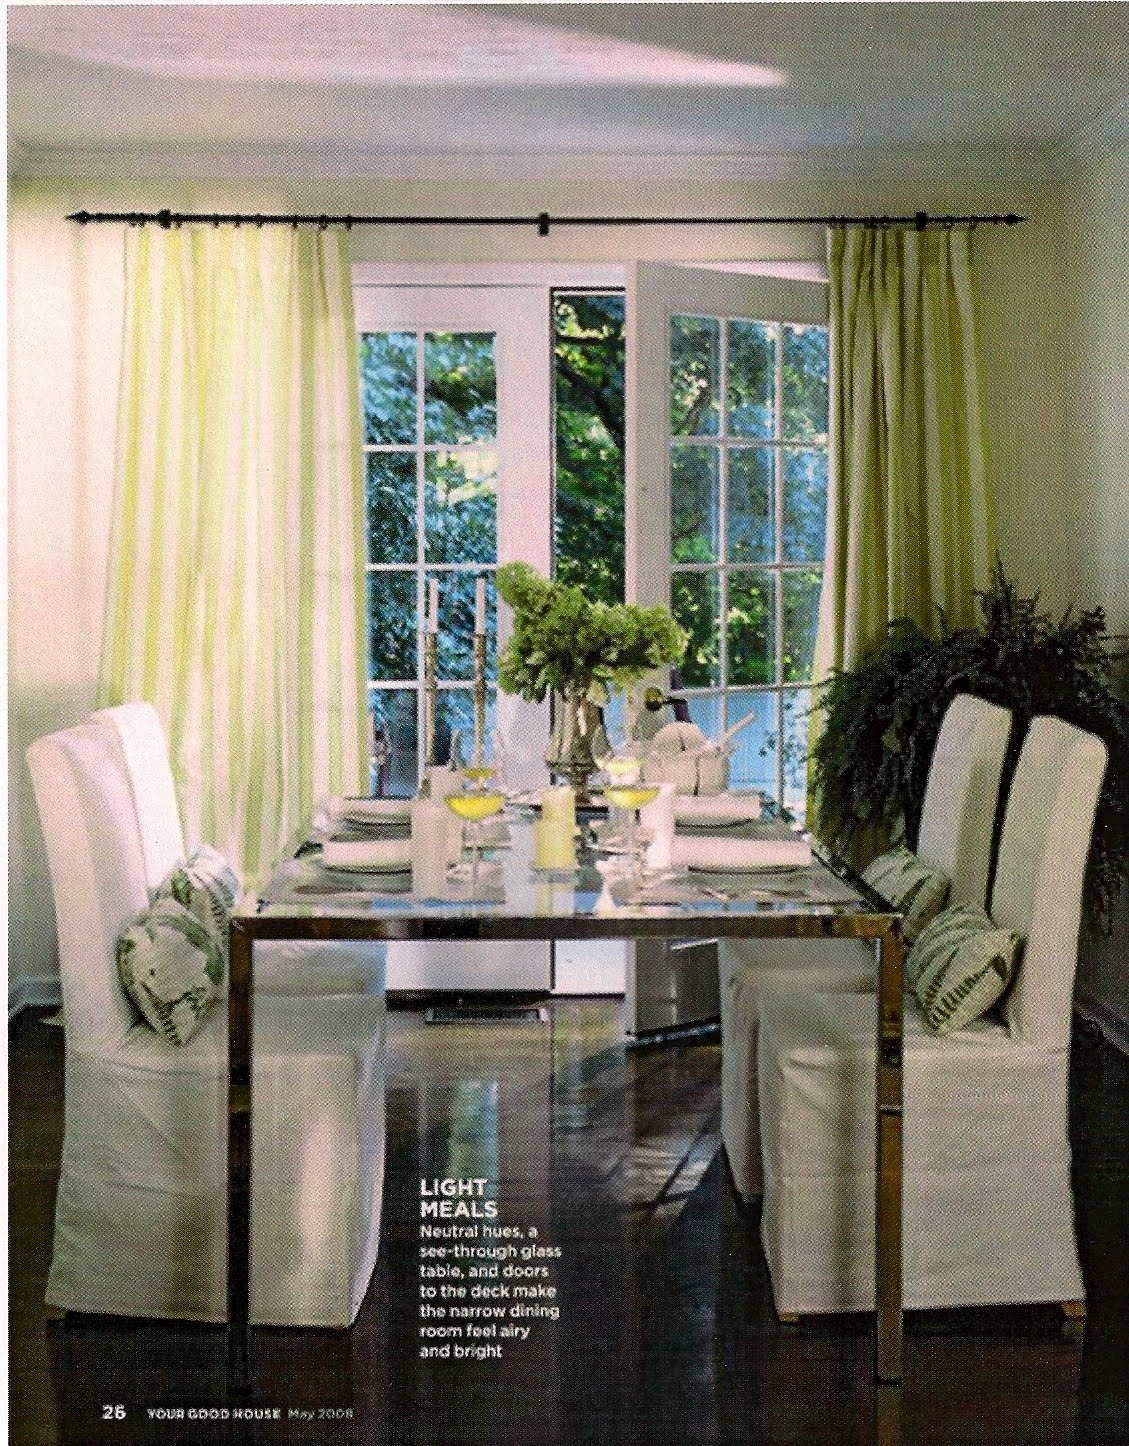 Green Street Dining Rooms Turned Into Home Offices: Green Street: Deciding On My Dining Room